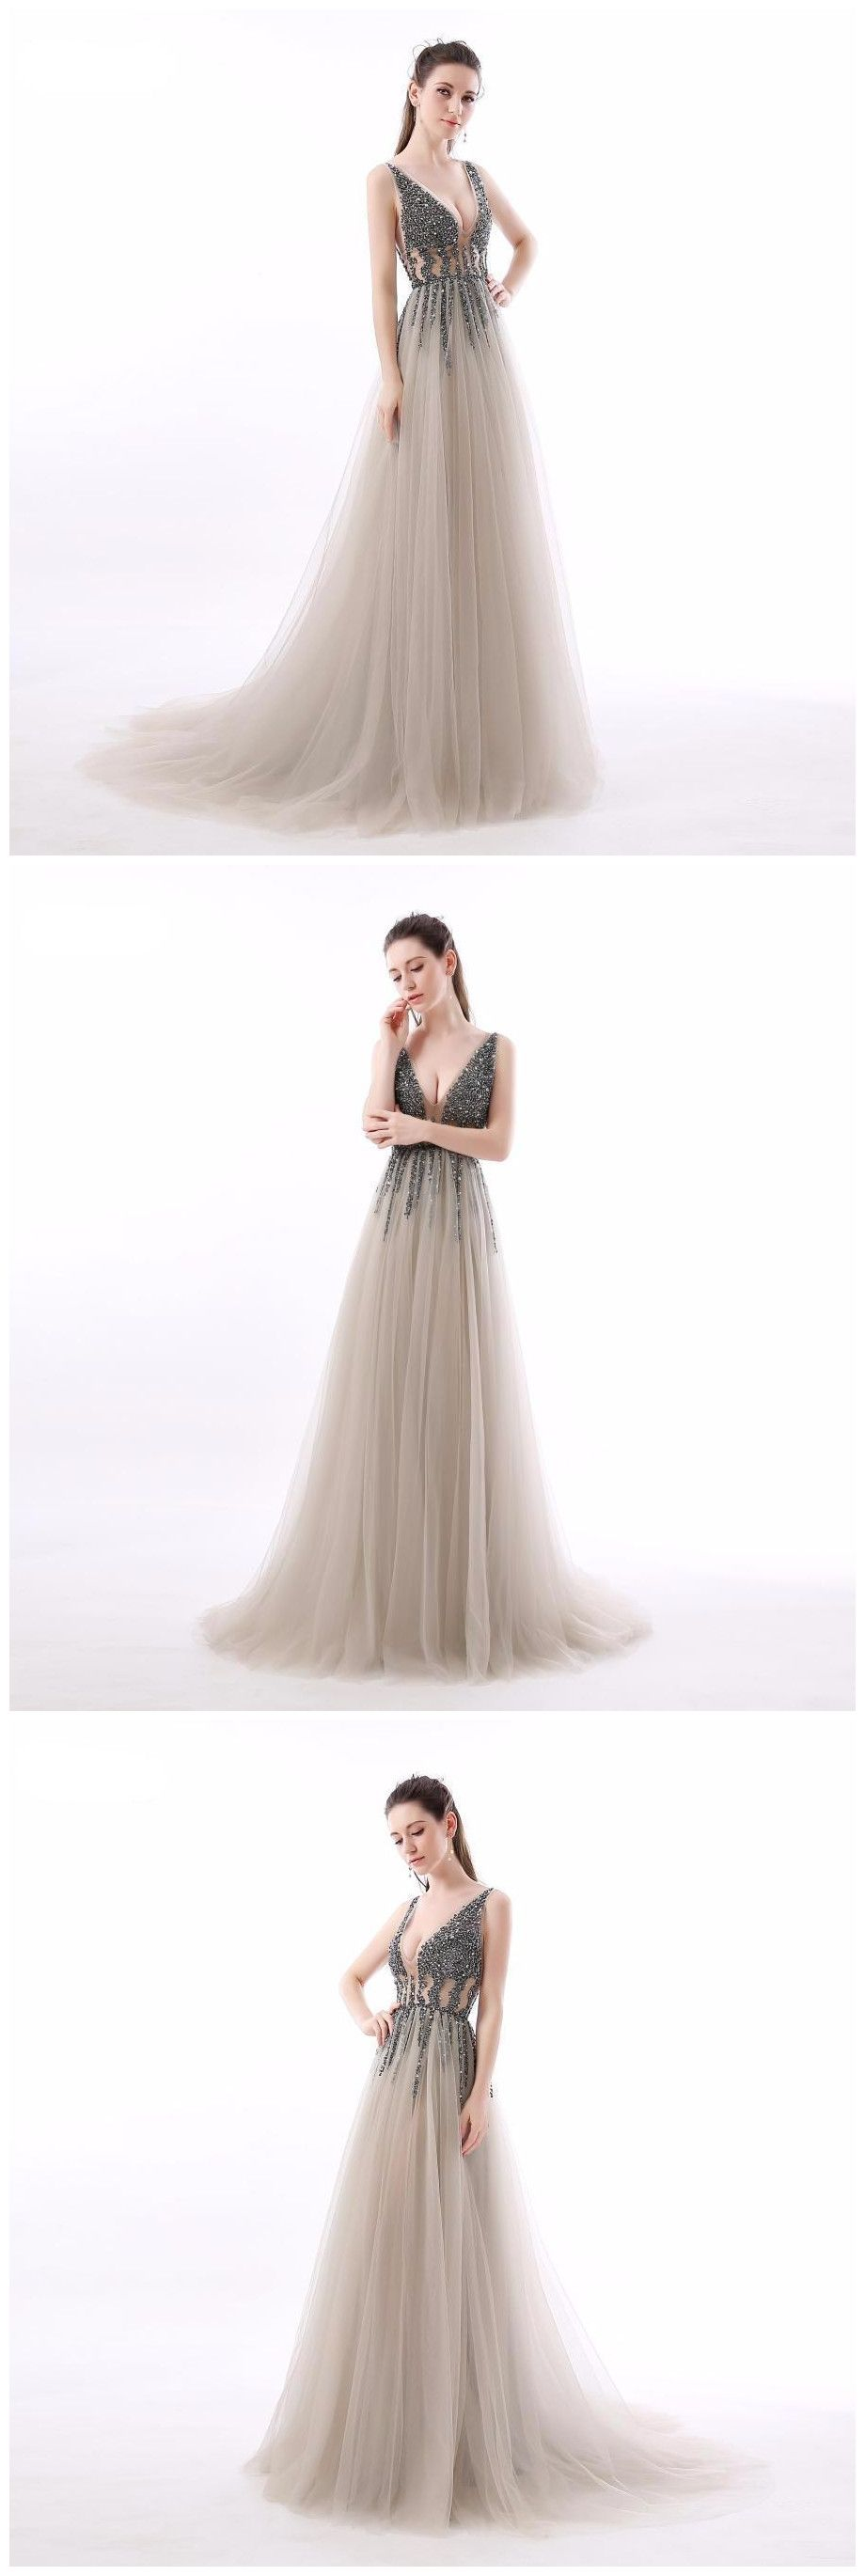 chic aline prom dresses v neck beading long prom dress evening